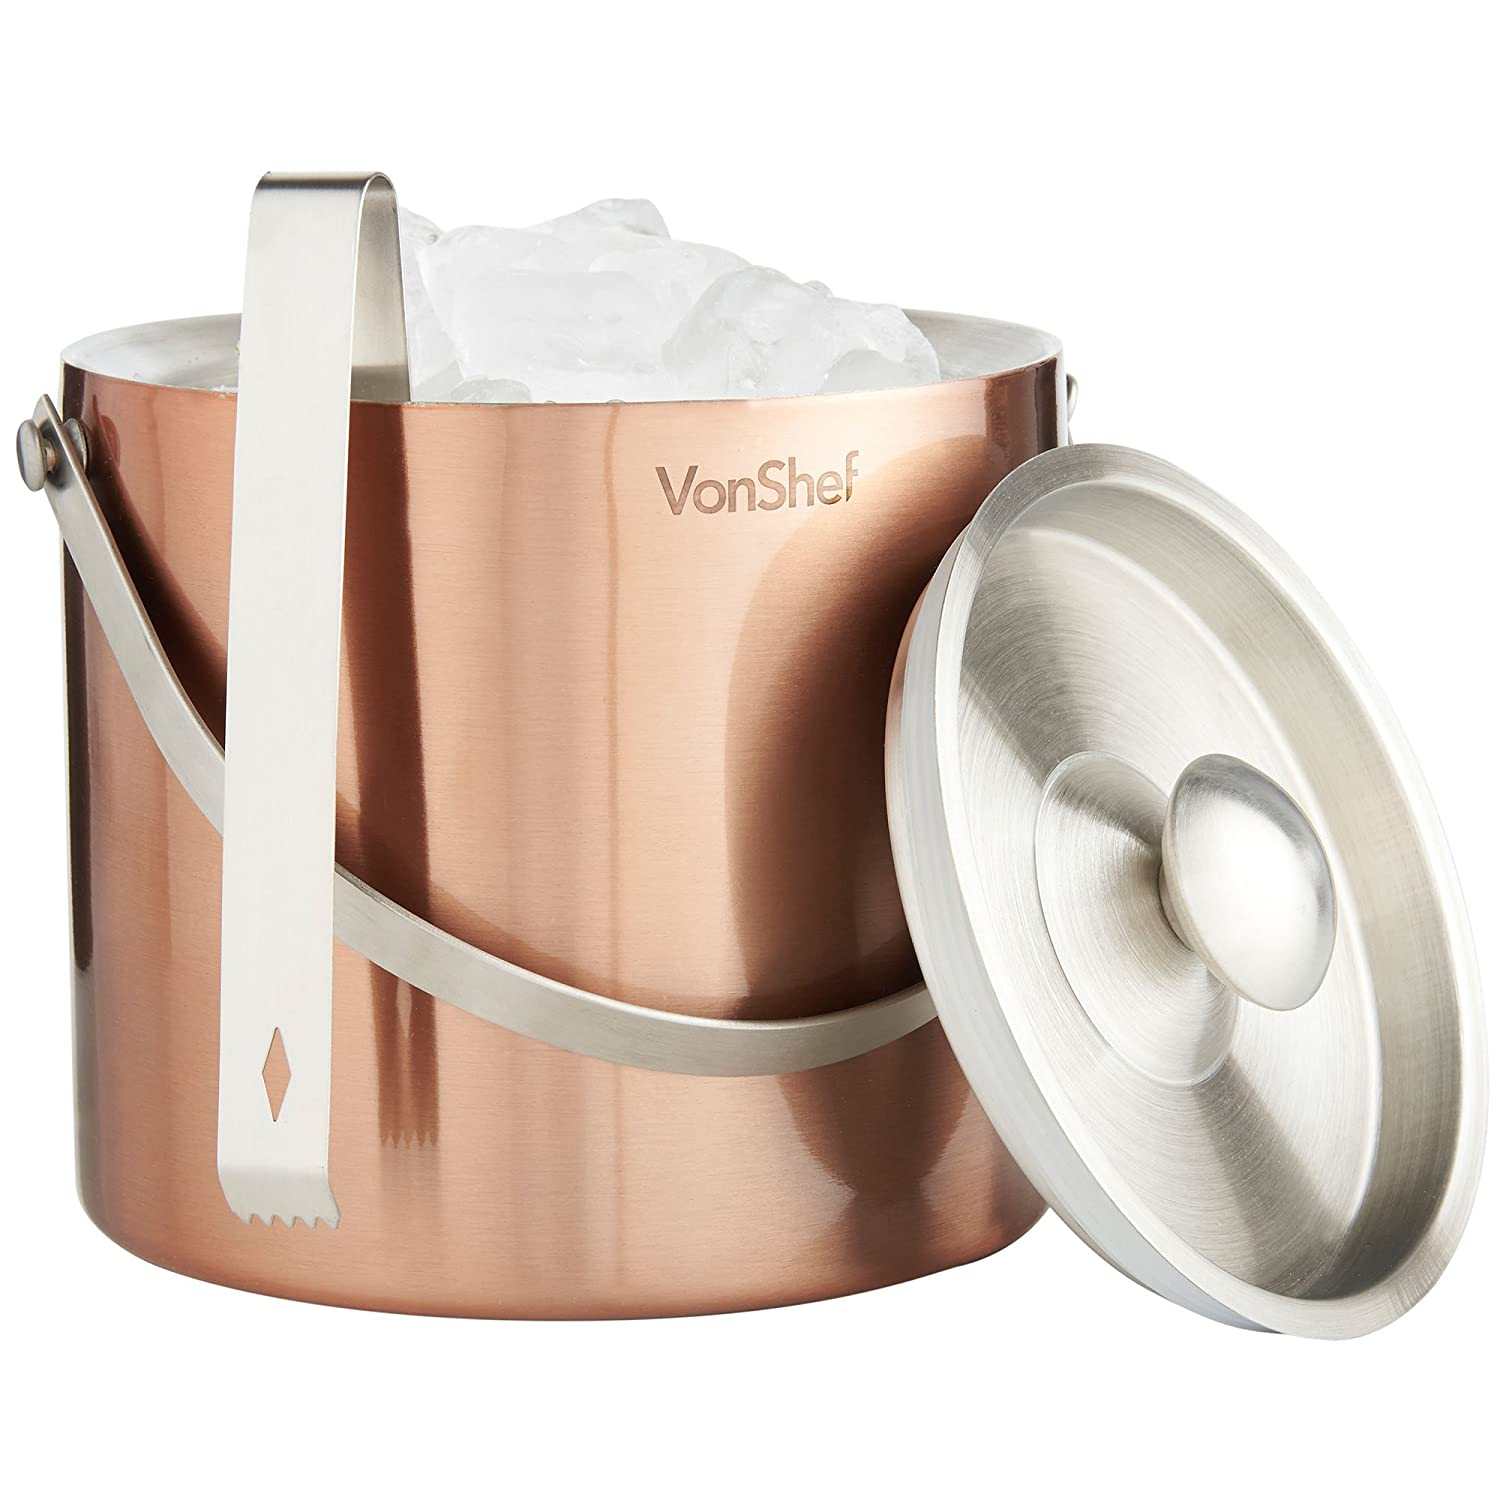 VonShef 3 Liter Copper Stainless Steel Ice Bucket Barware Kit - Double Walled Insulated with Lid, Carry Handle and Tongs Set 07/769